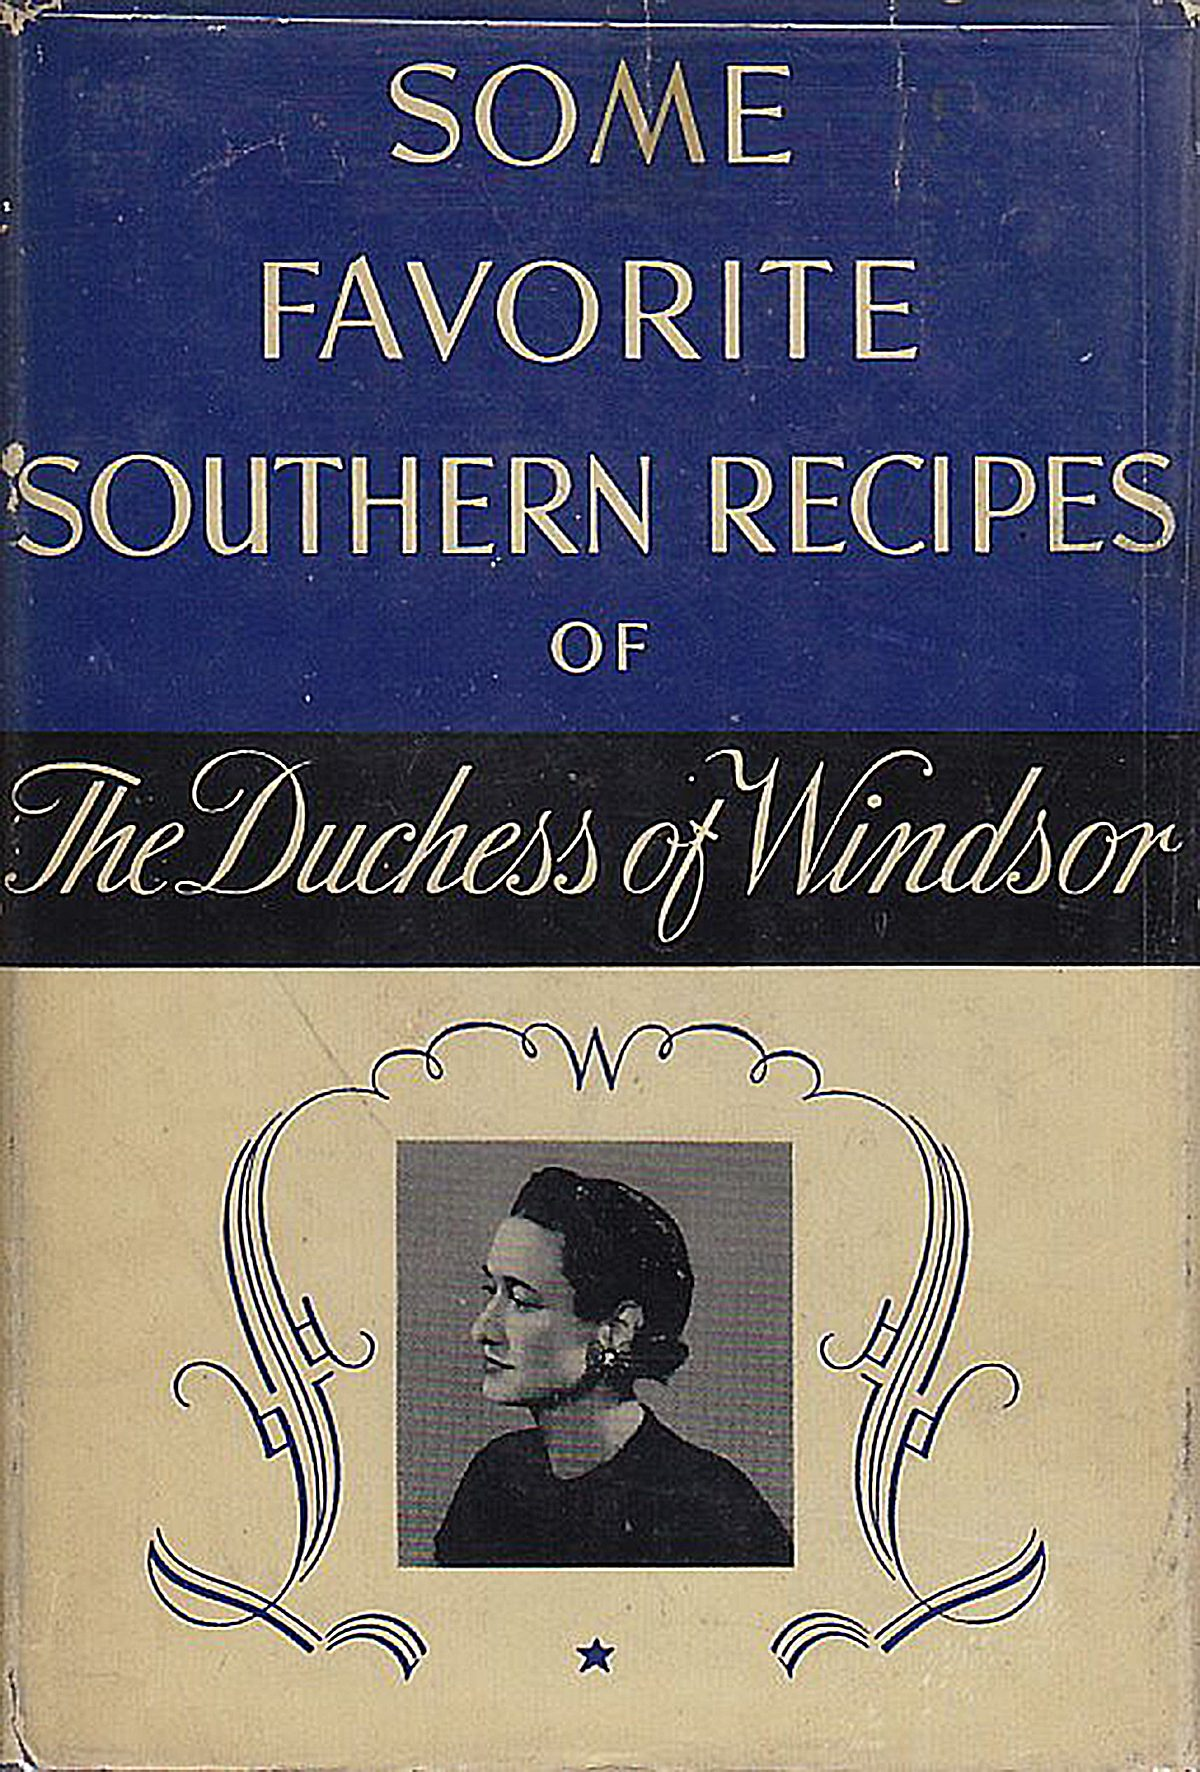 The Duchess of Windsor's Wartime Cook Book 1942 - Flashbak